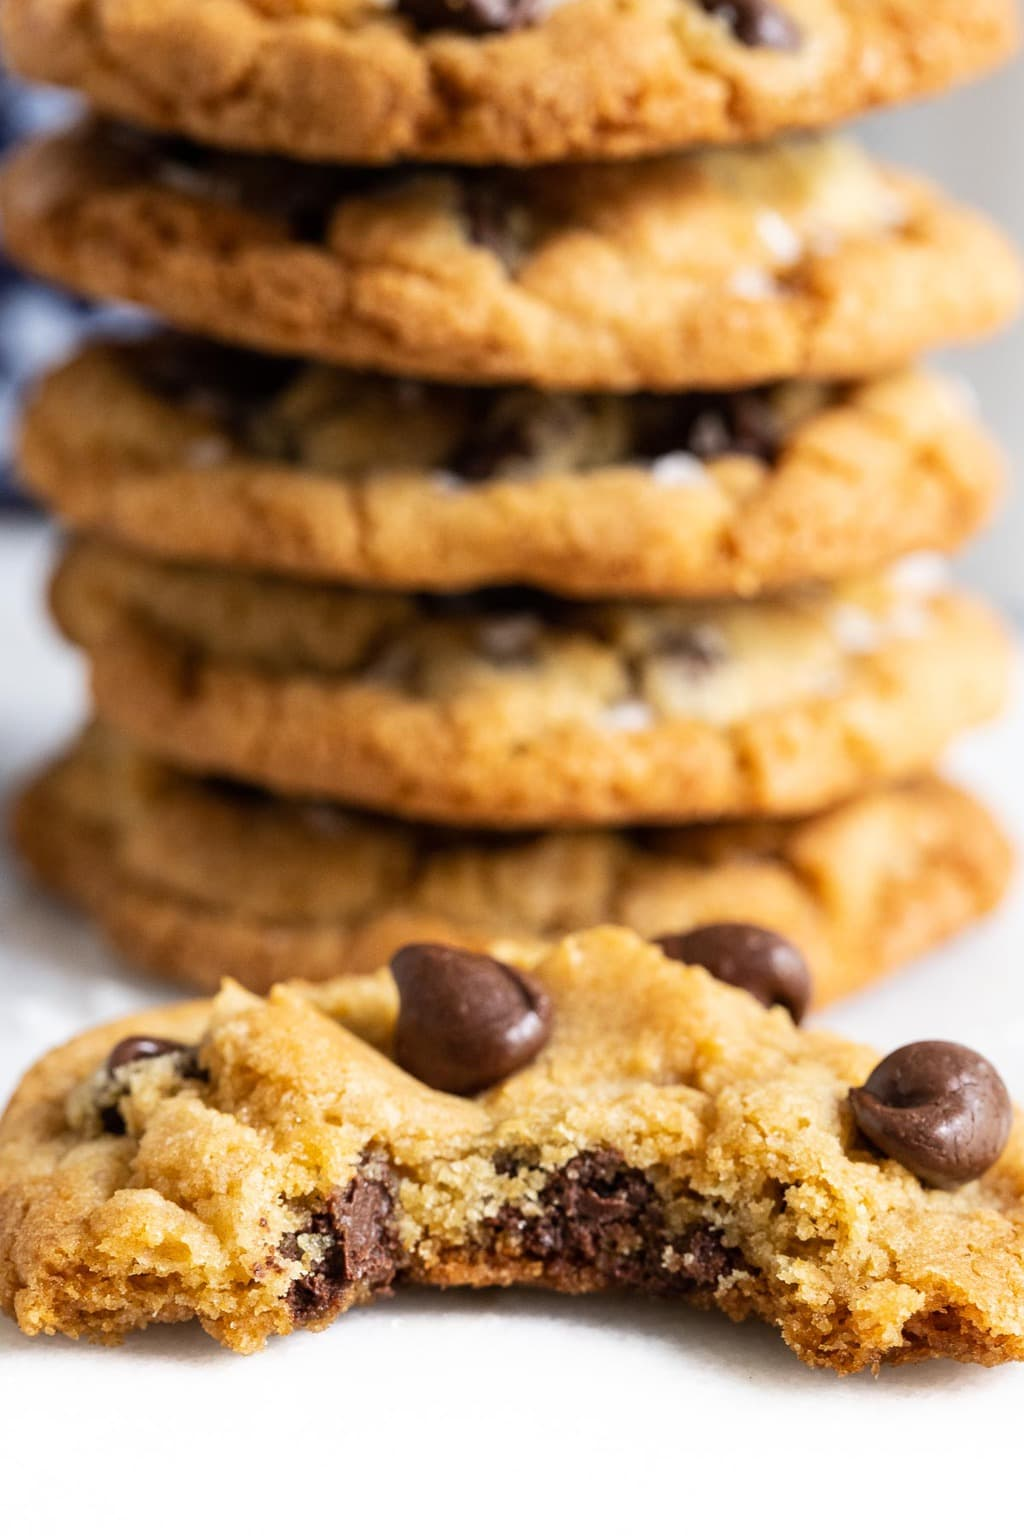 Ultra closeup vertical photo of the inside of one of The BEST Chocolate Chip Cookies with a stack of cookies in the background.